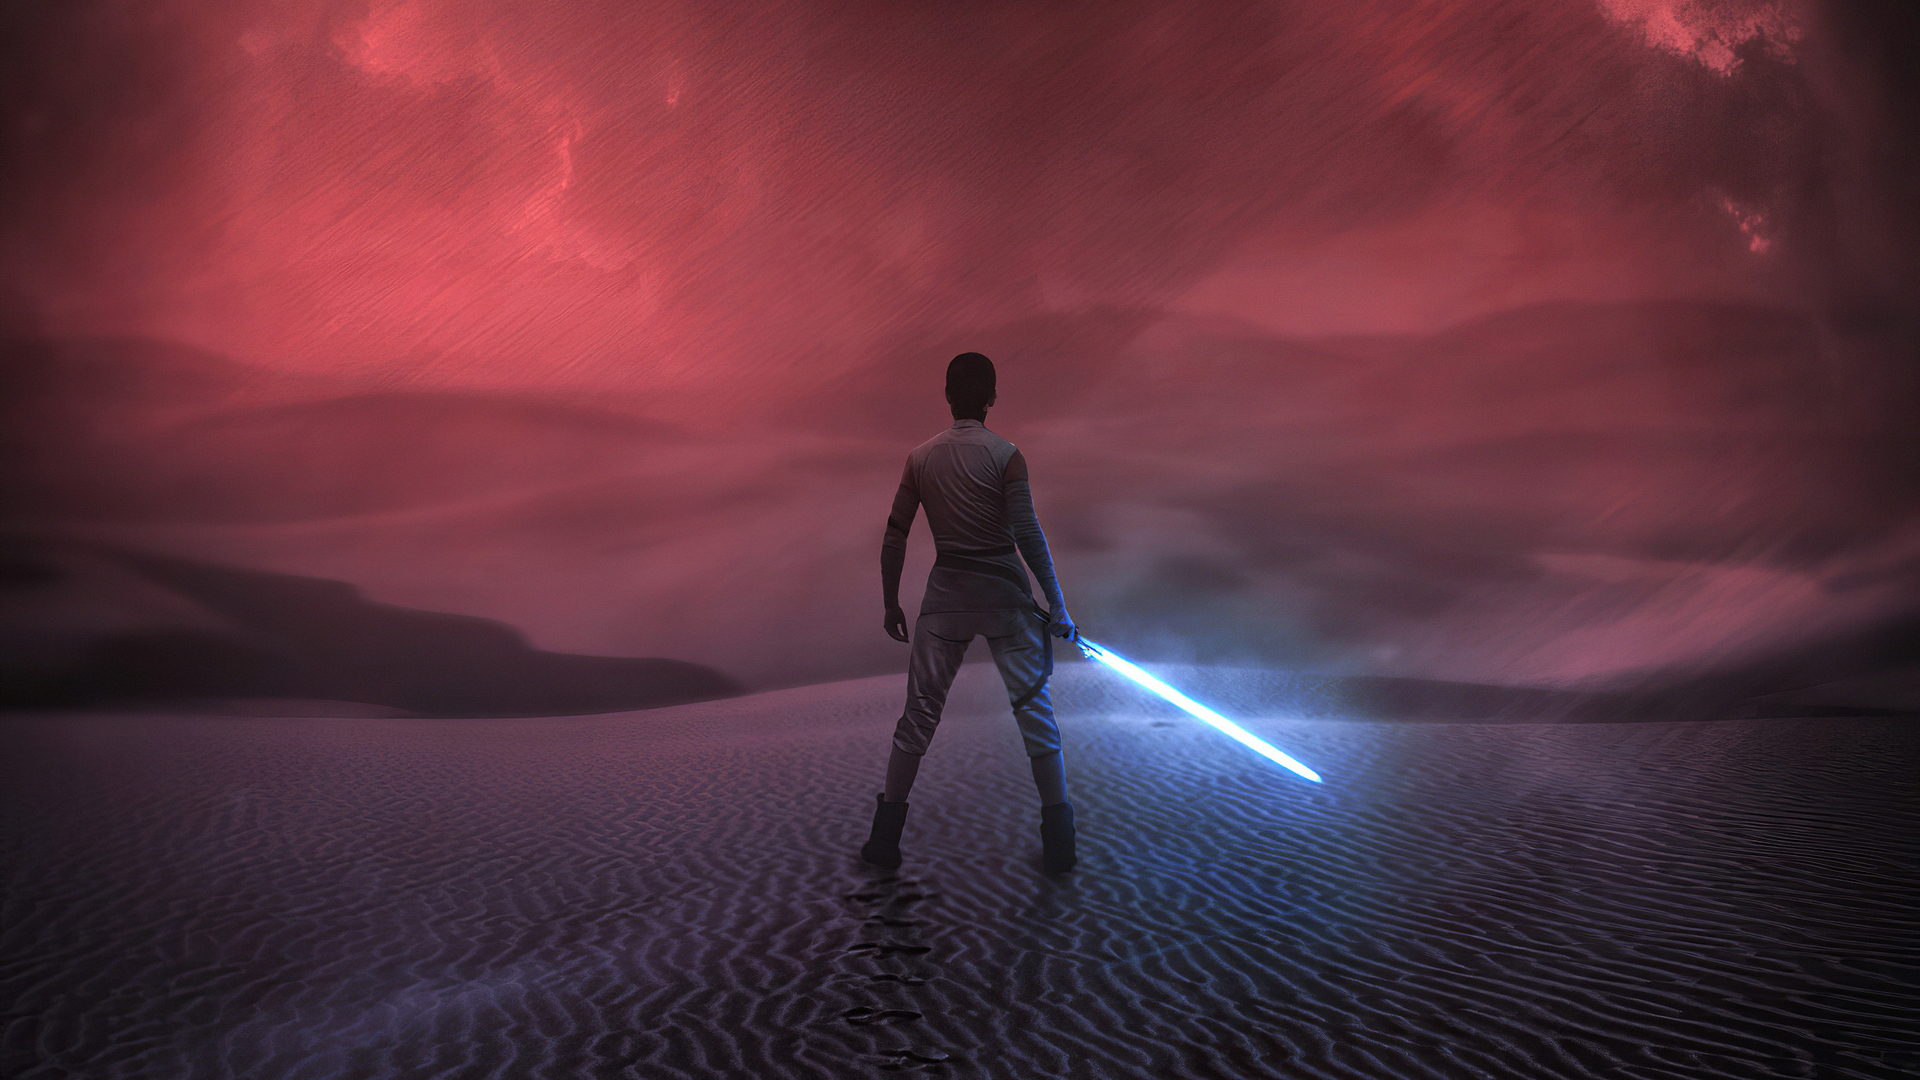 1920x1080 Star Wars The Rise Of Skywalker 4k Rey Laptop Full Hd 1080p Hd 4k Wallpapers Images Backgrounds Photos And Pictures